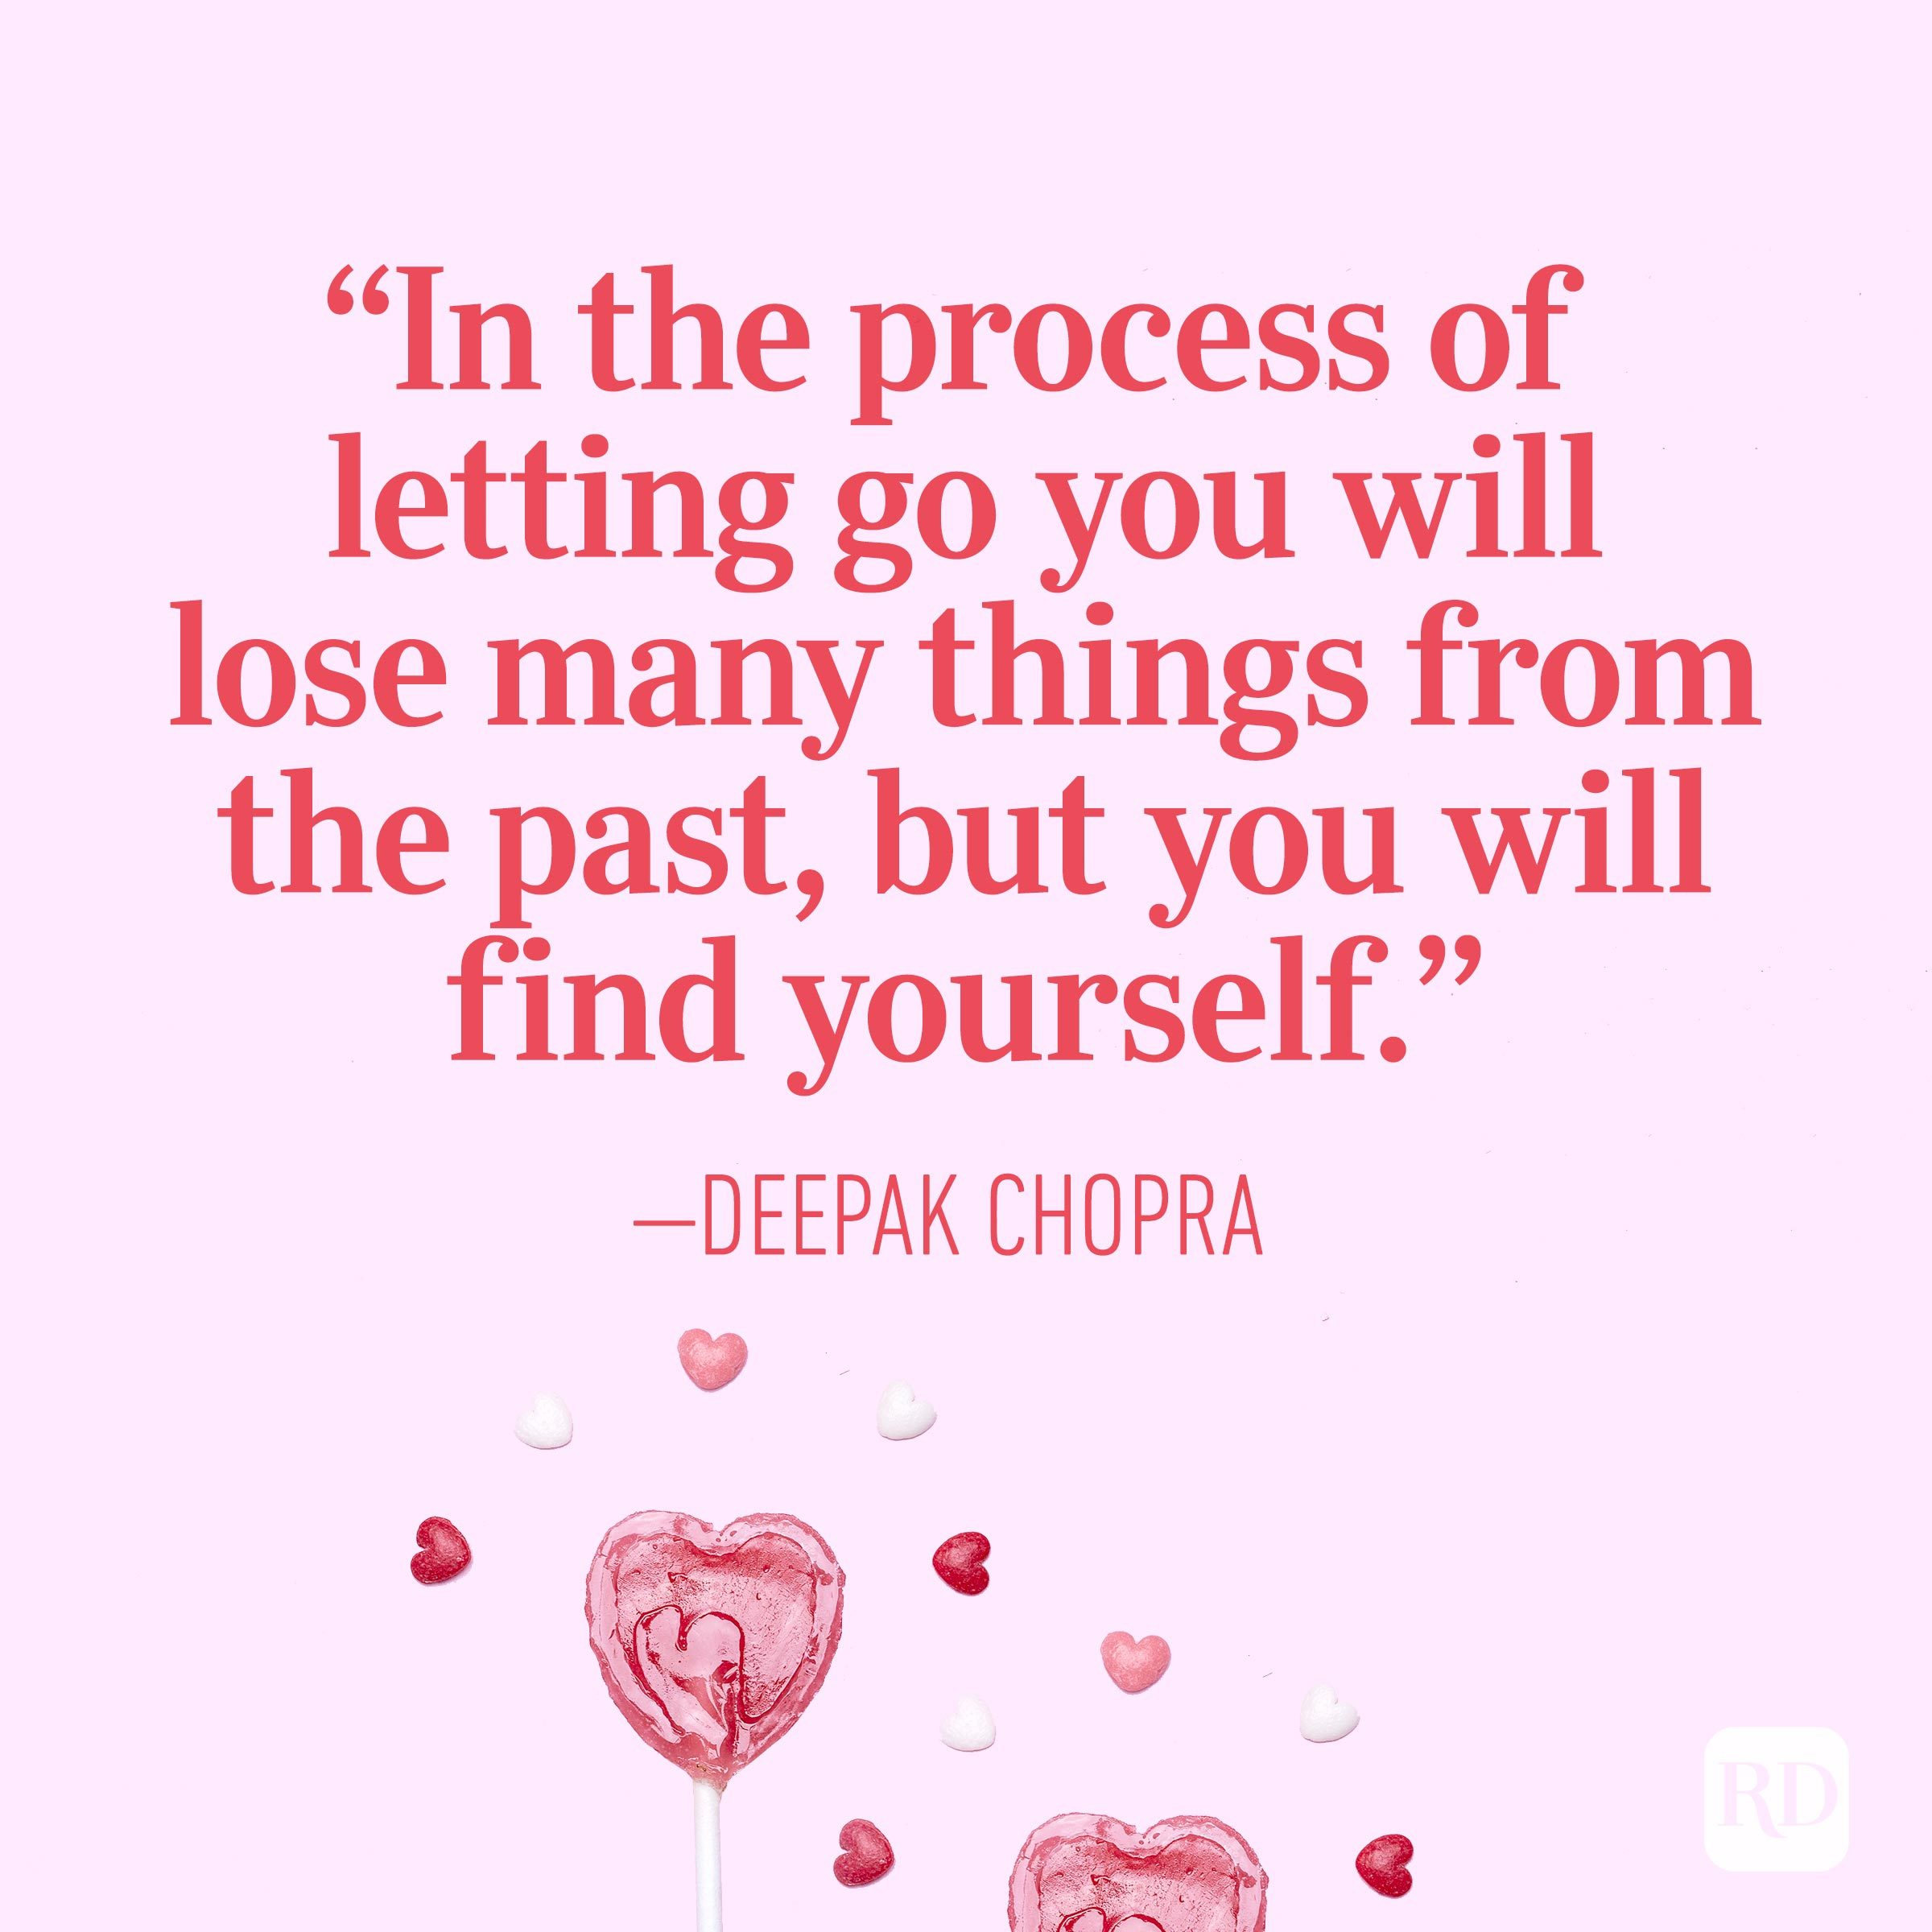 """In the process of letting go you will lose many things from the past, but you will find yourself."" — Deepak Chopra"